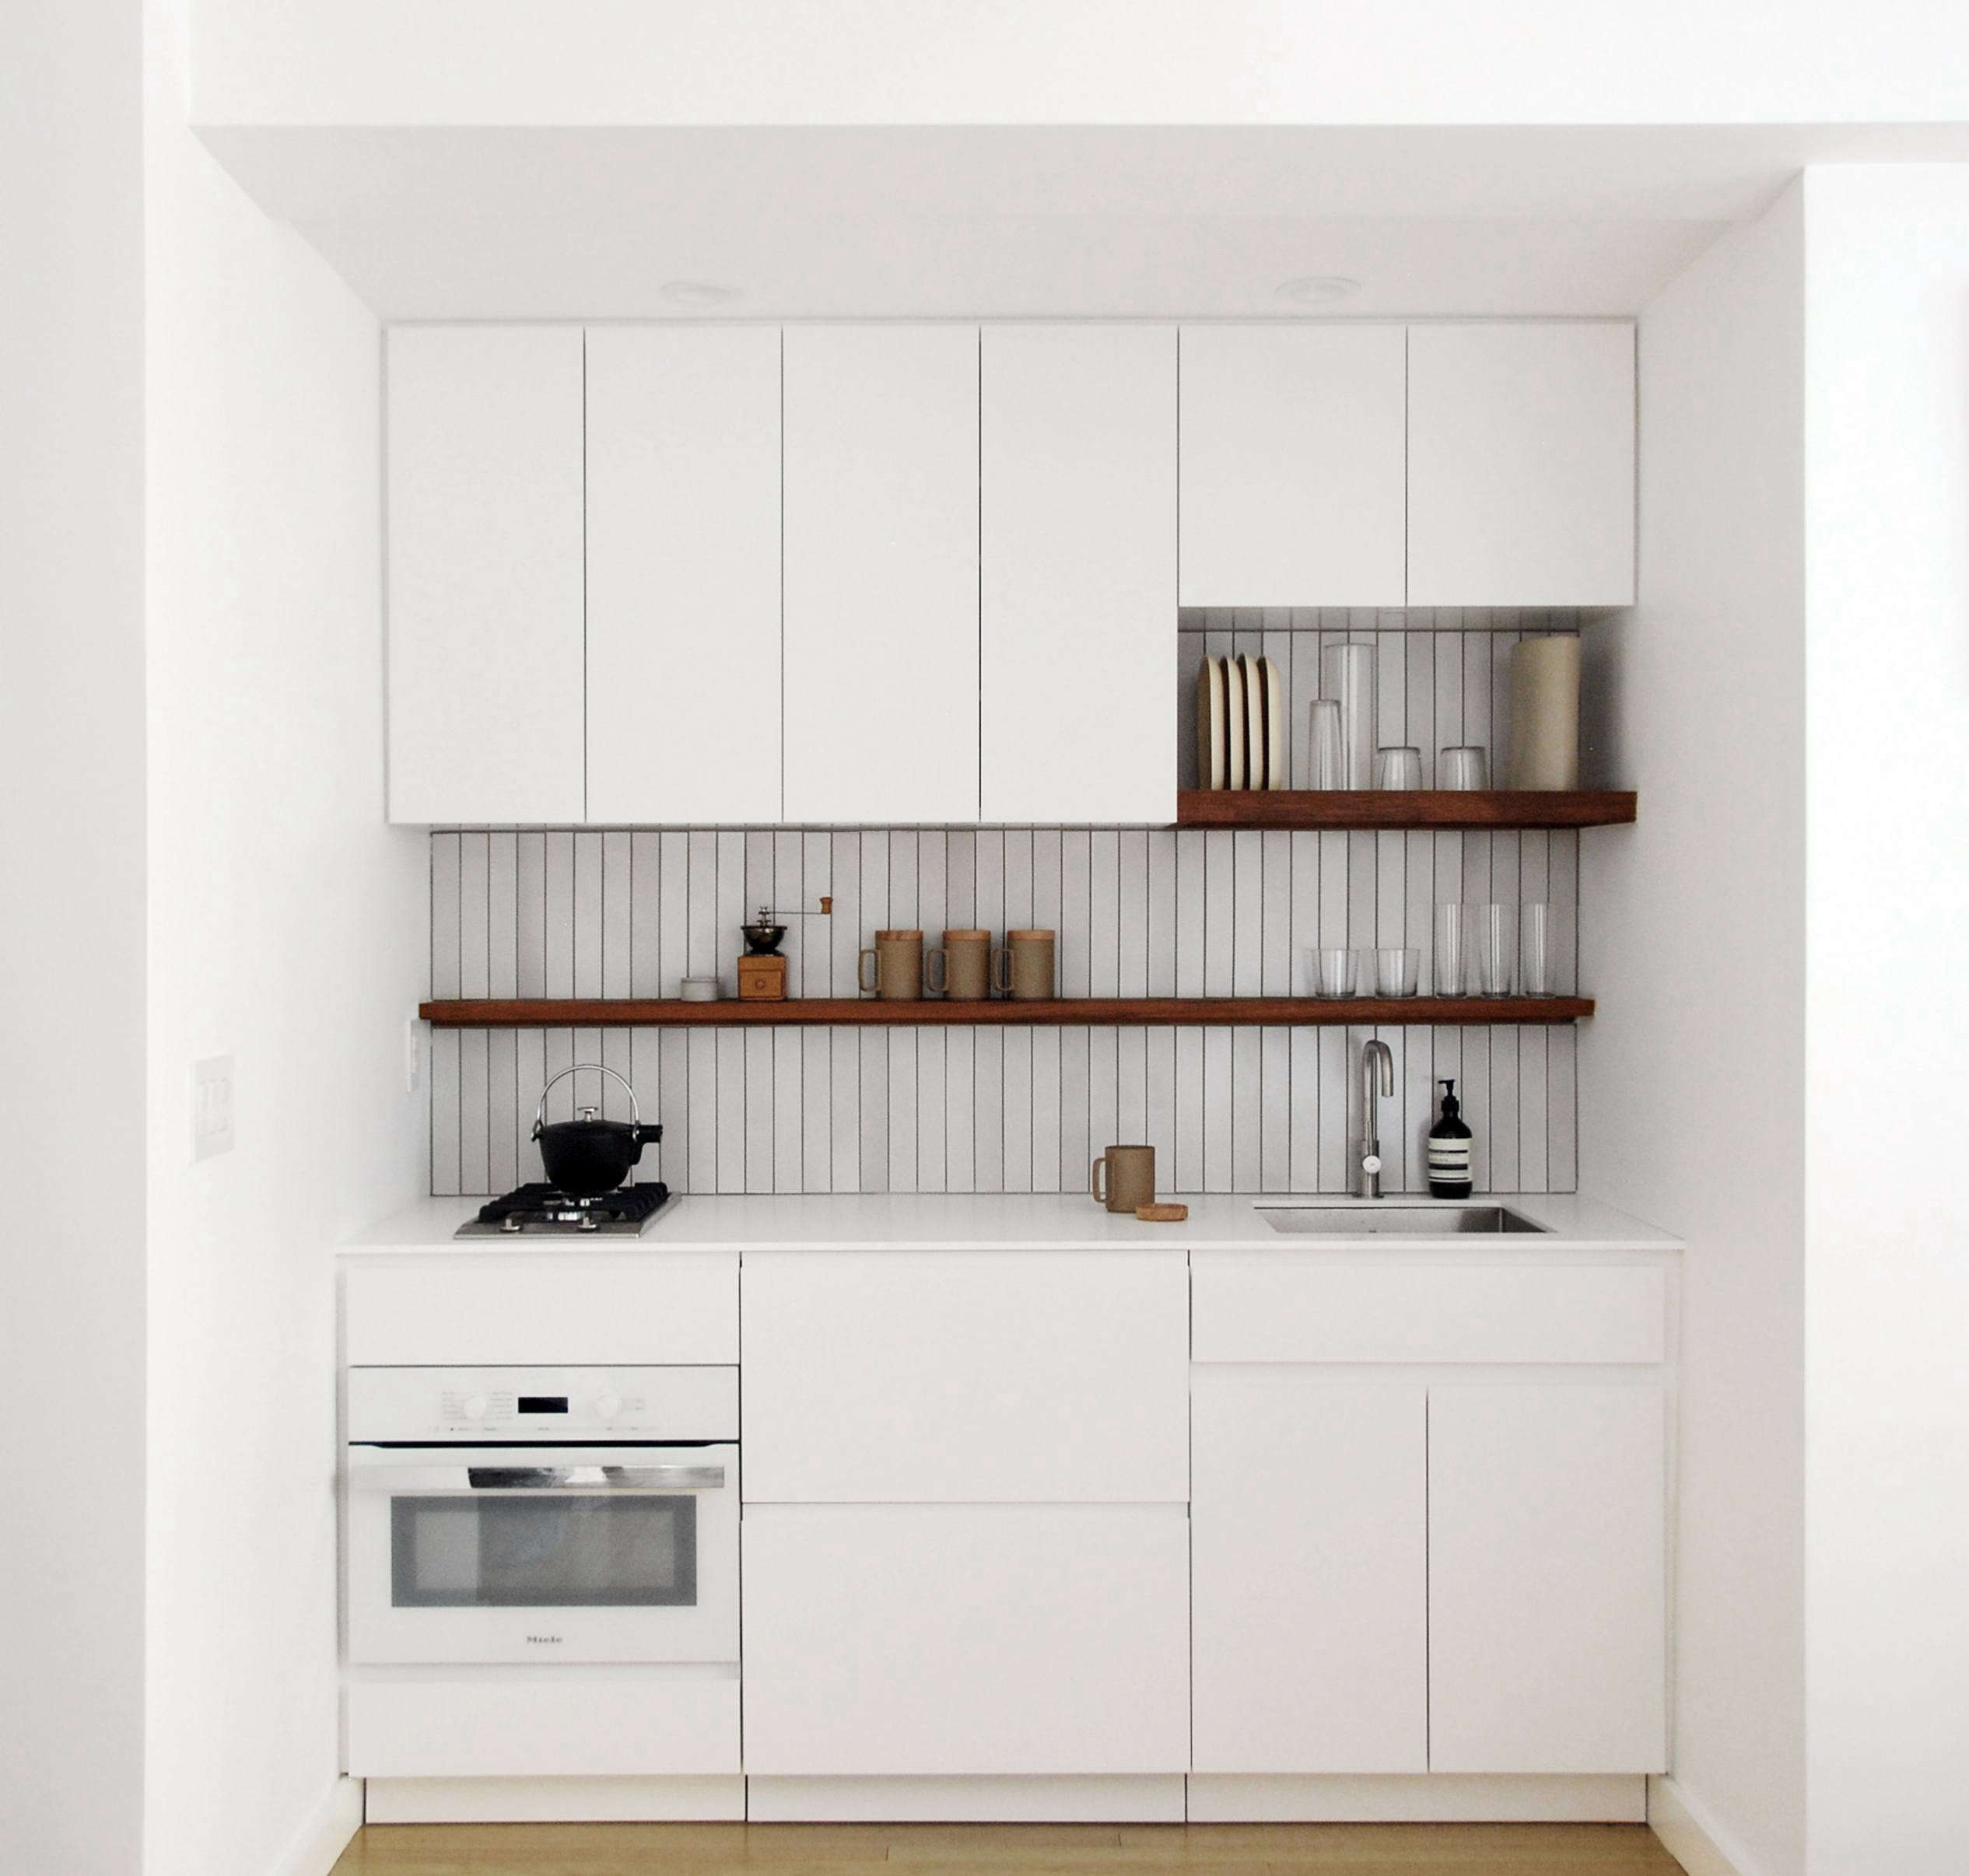 A Tiny Kitchen Made For Cooking Everything You Need In 26 Square Feet The Organized Home